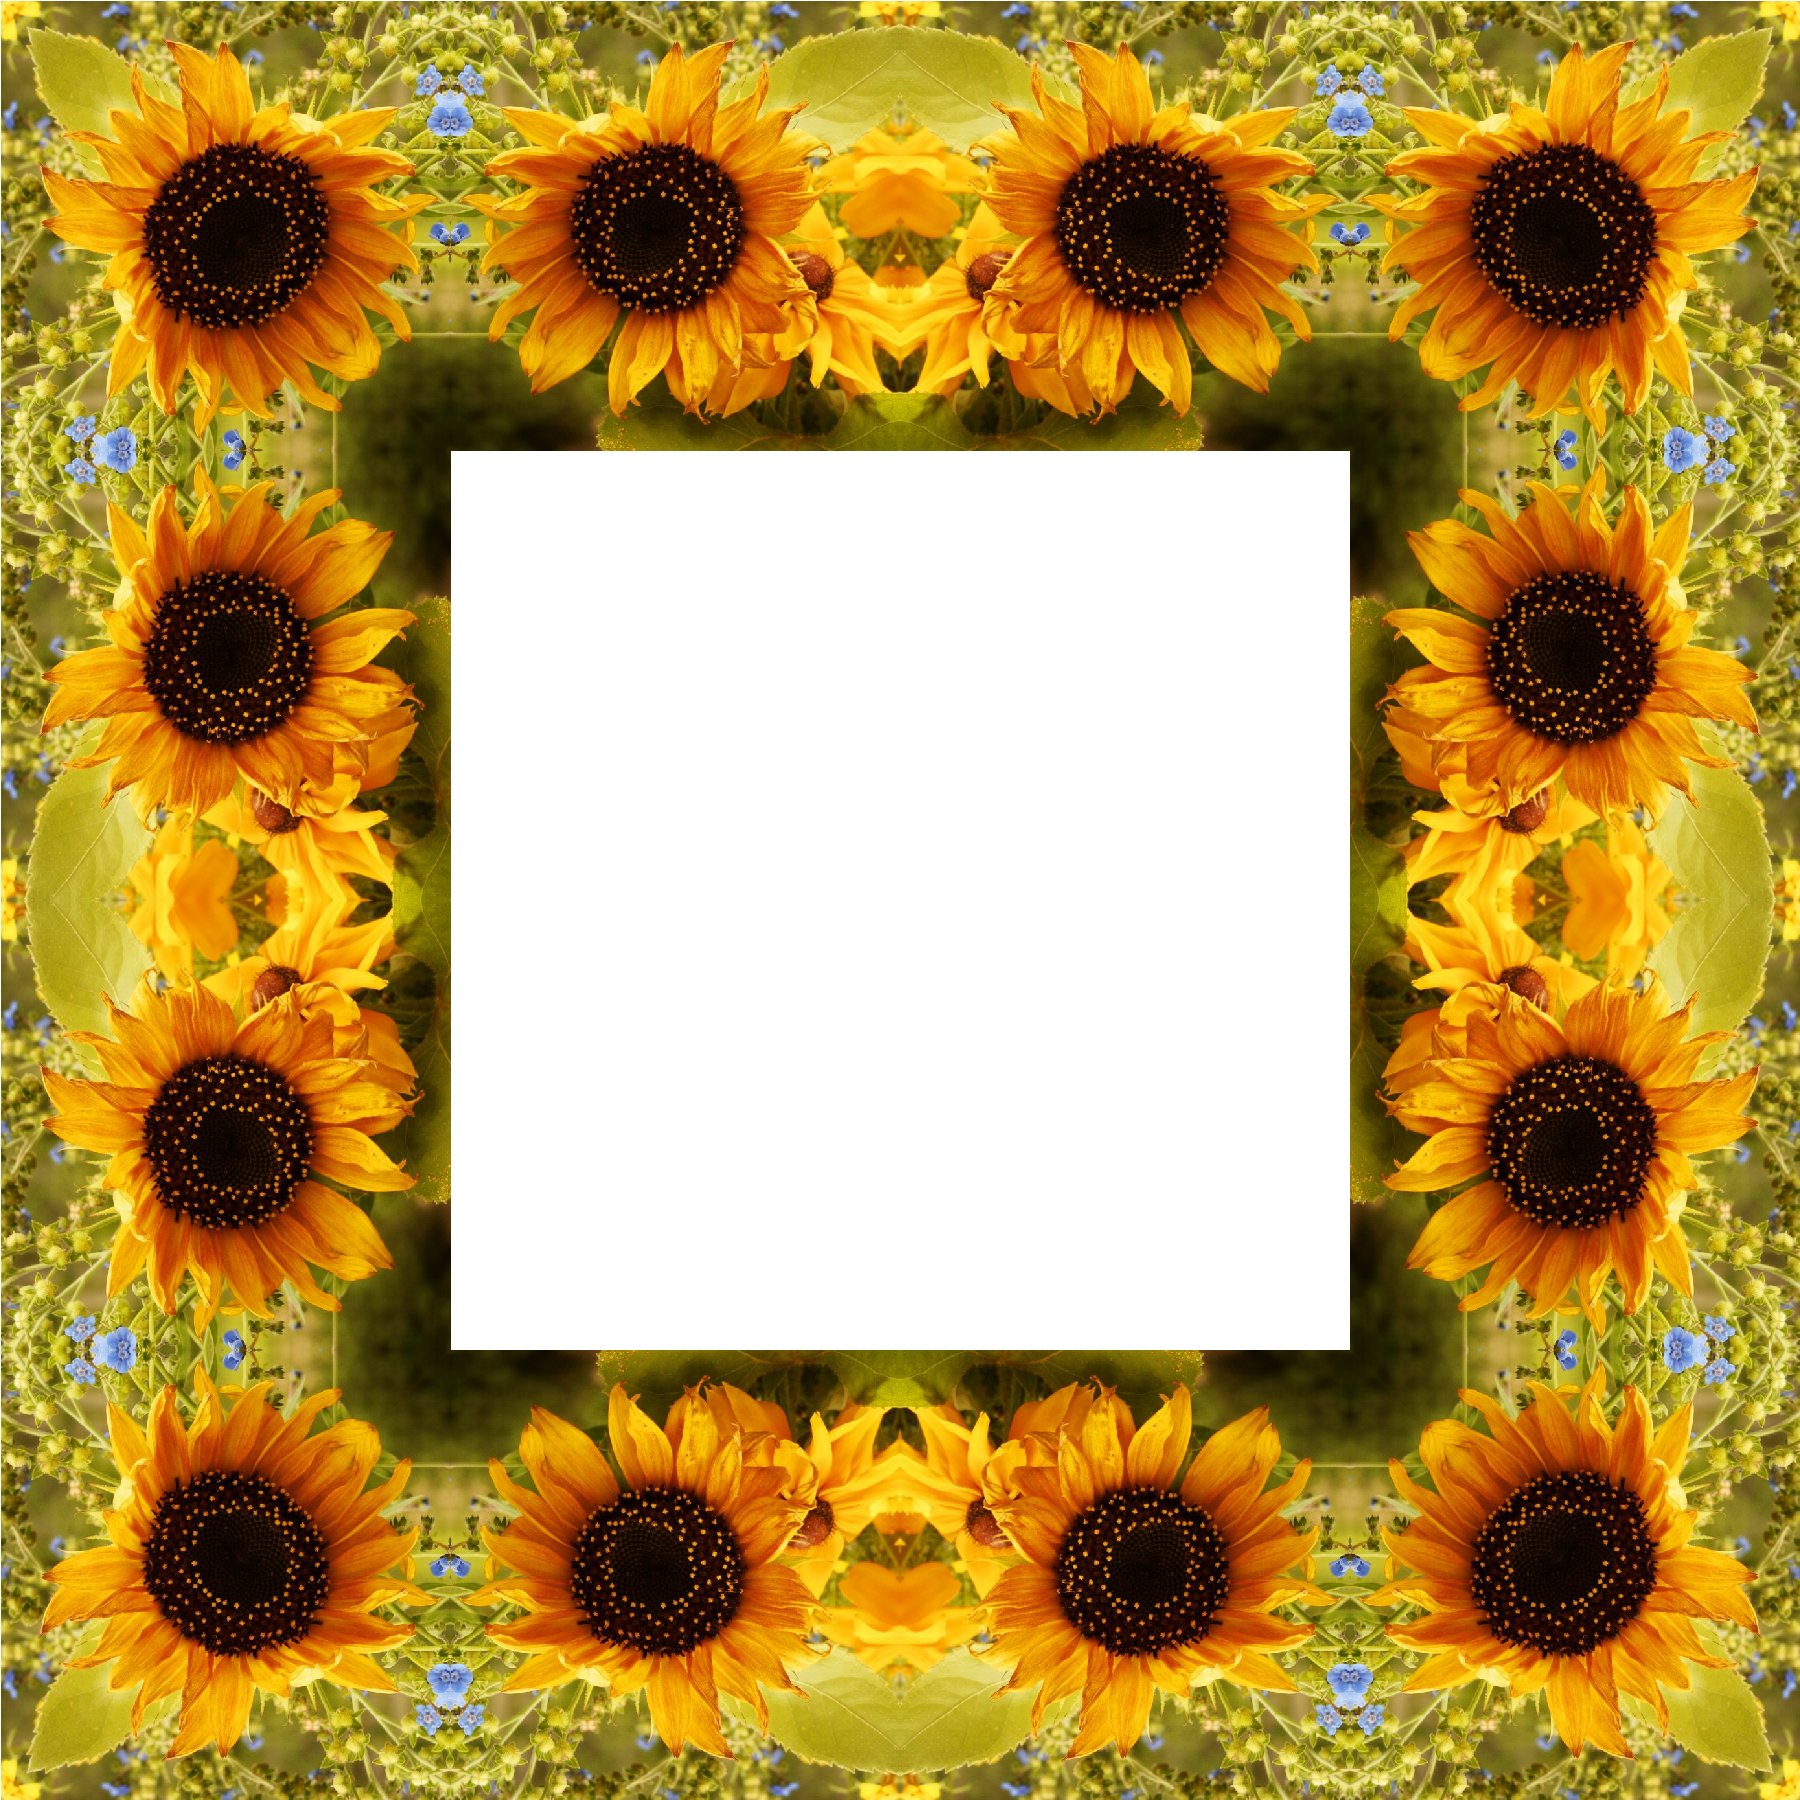 Clipart Sunflower Png Best #41033 - Free Icons and PNG ...